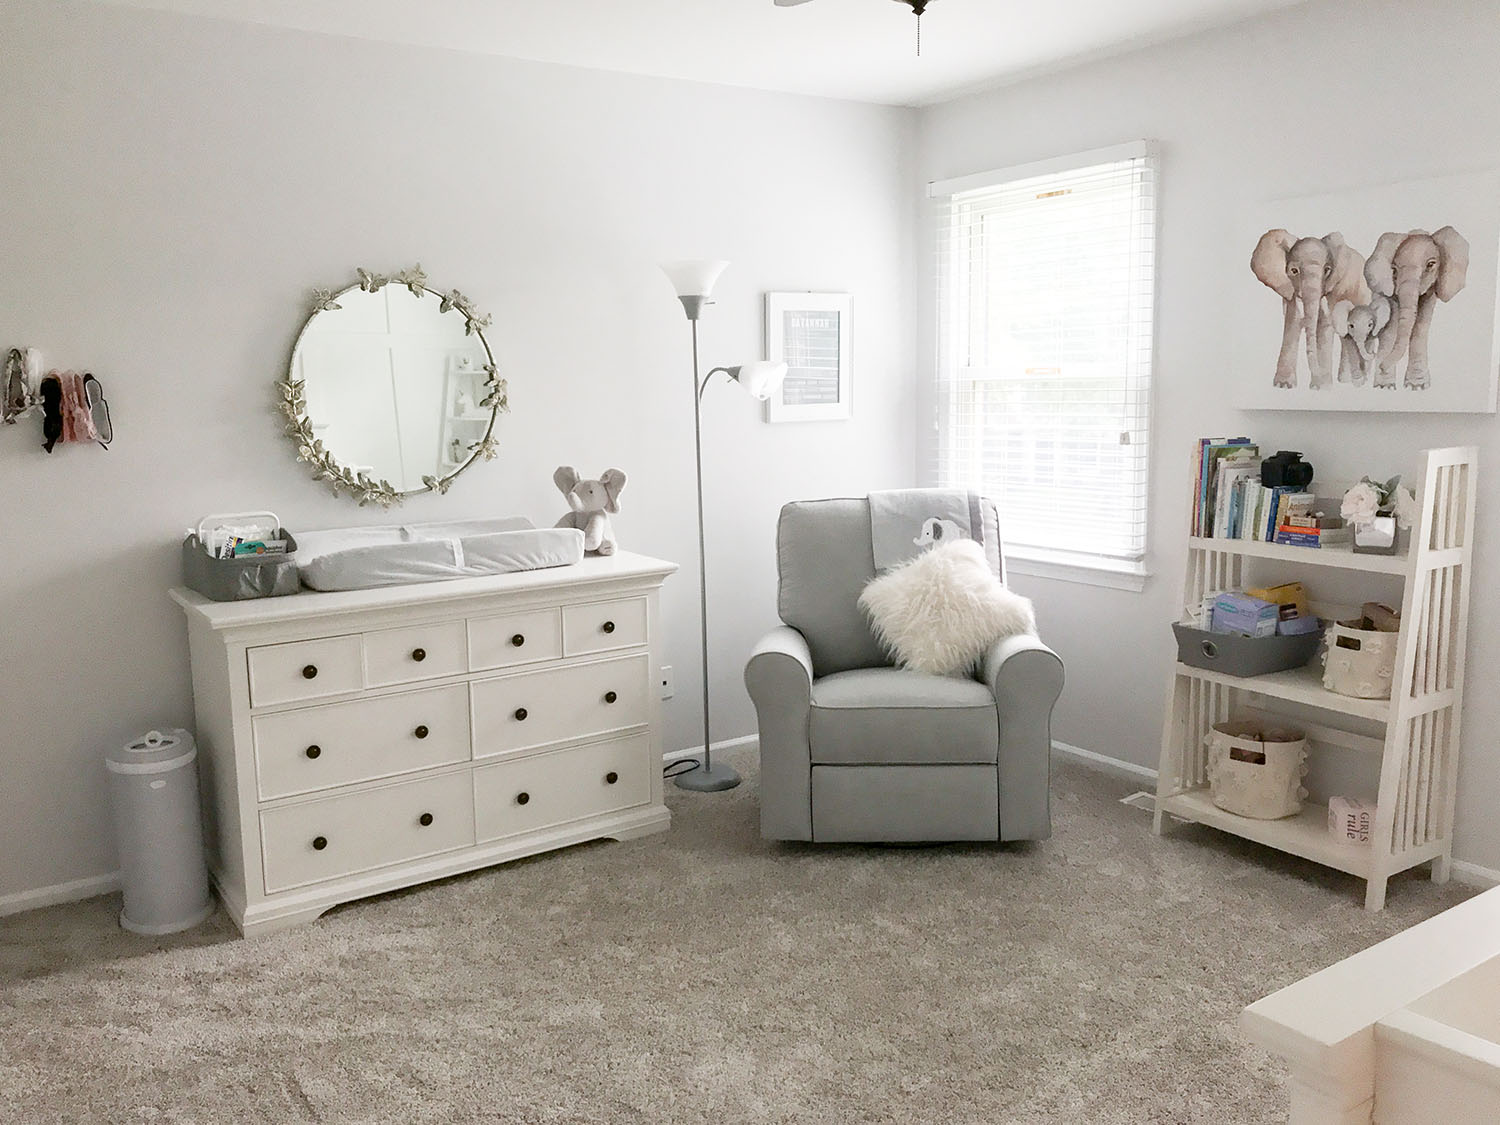 Lavender and Grey Baby Girl Nursery Ideas | Pottery Barn Larkin Extra Wide Dresser in Simply White with Baby Elephants | Pottery Barn monique lhuillier butterfly mirror baby girl nursery